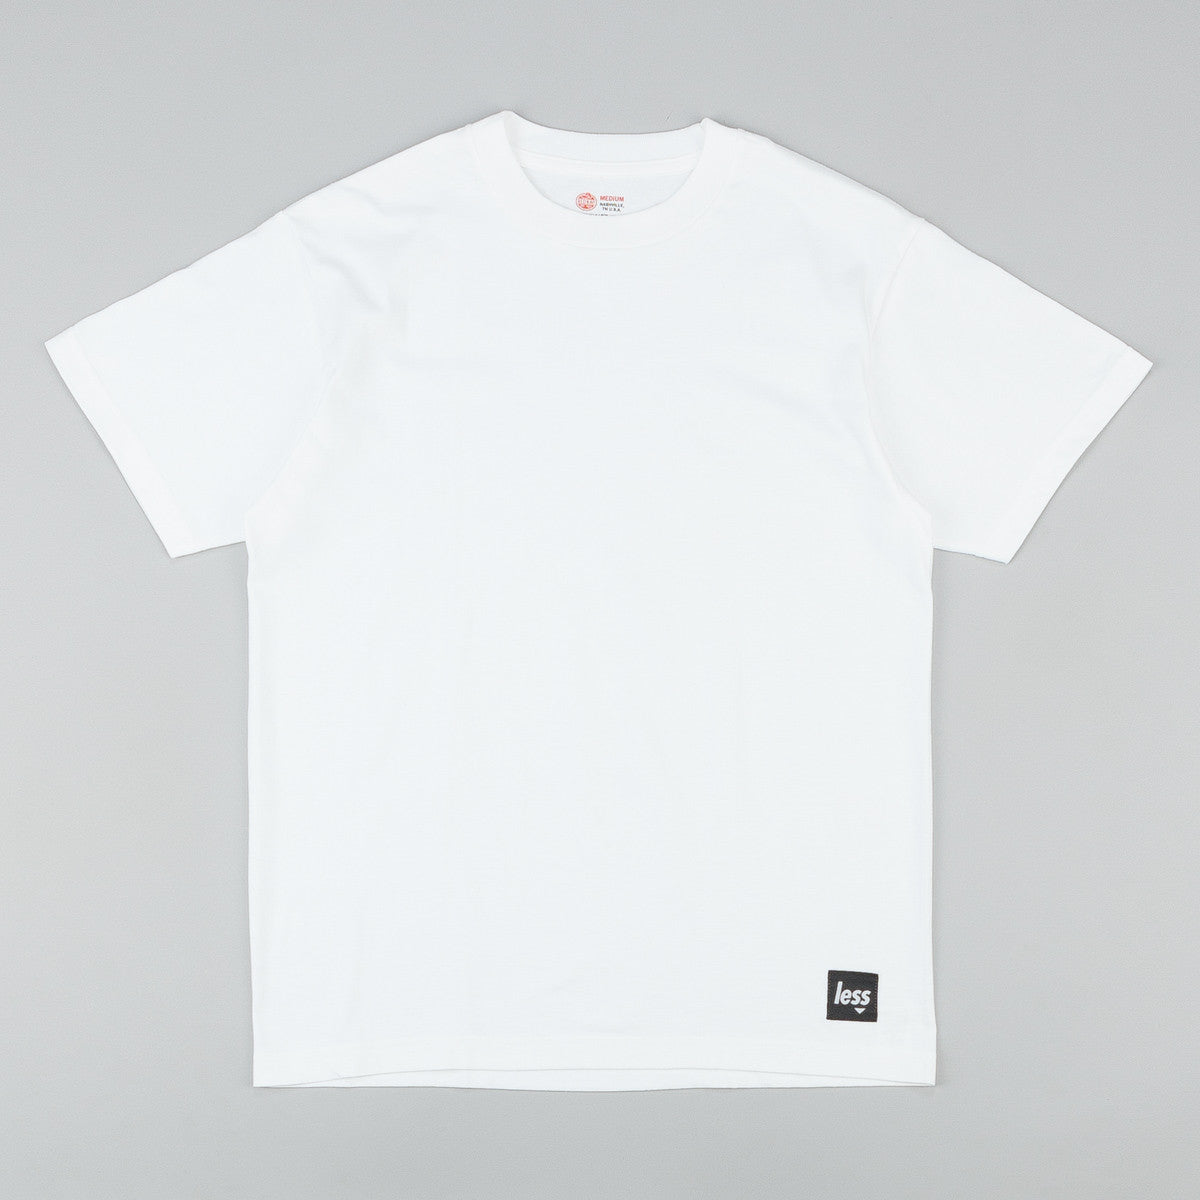 Less x Red Kap Single Jersey 2 Pack T-Shirt - White